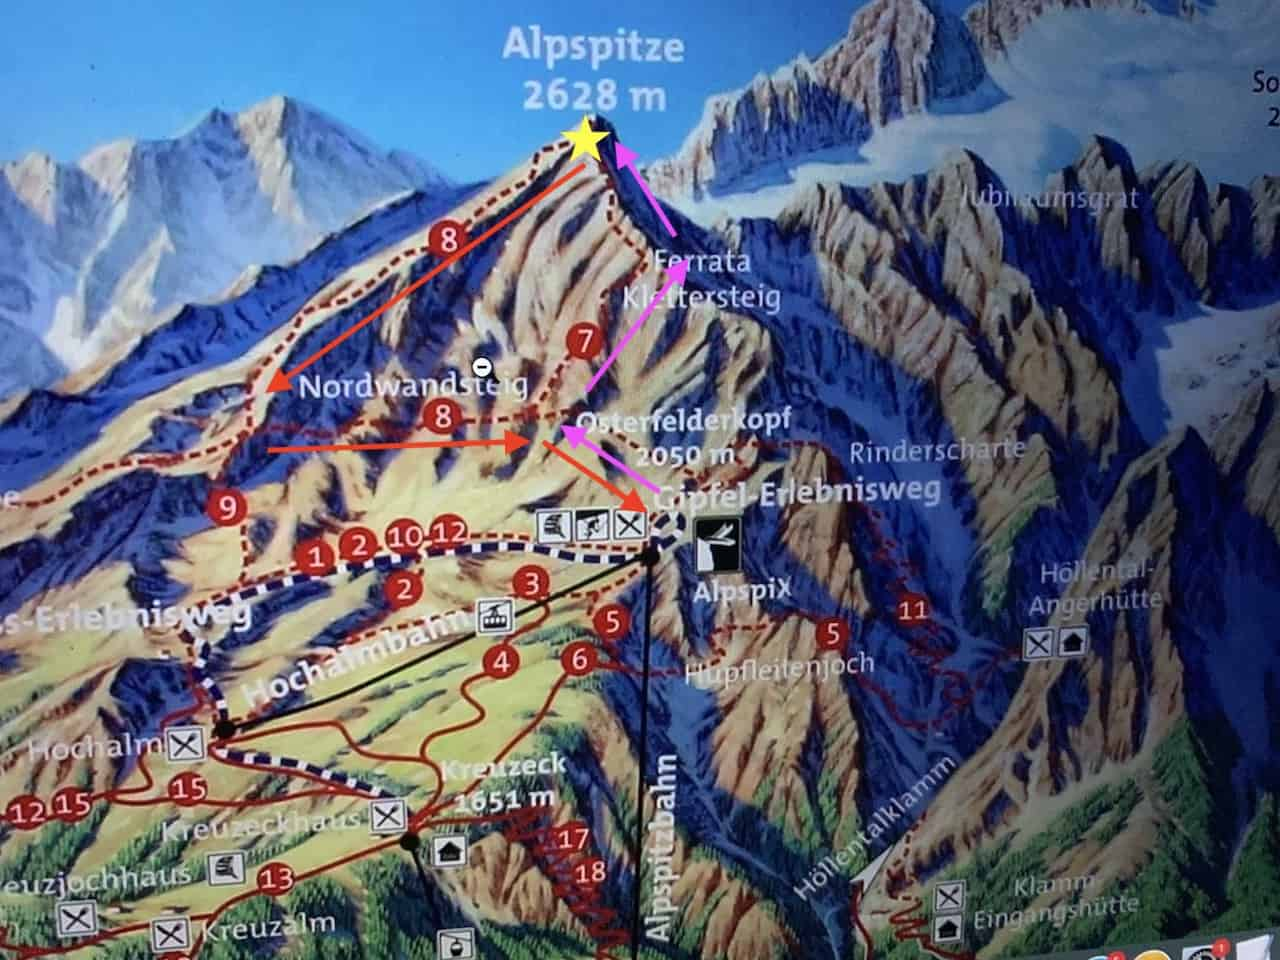 Alpspitze Hiking Map